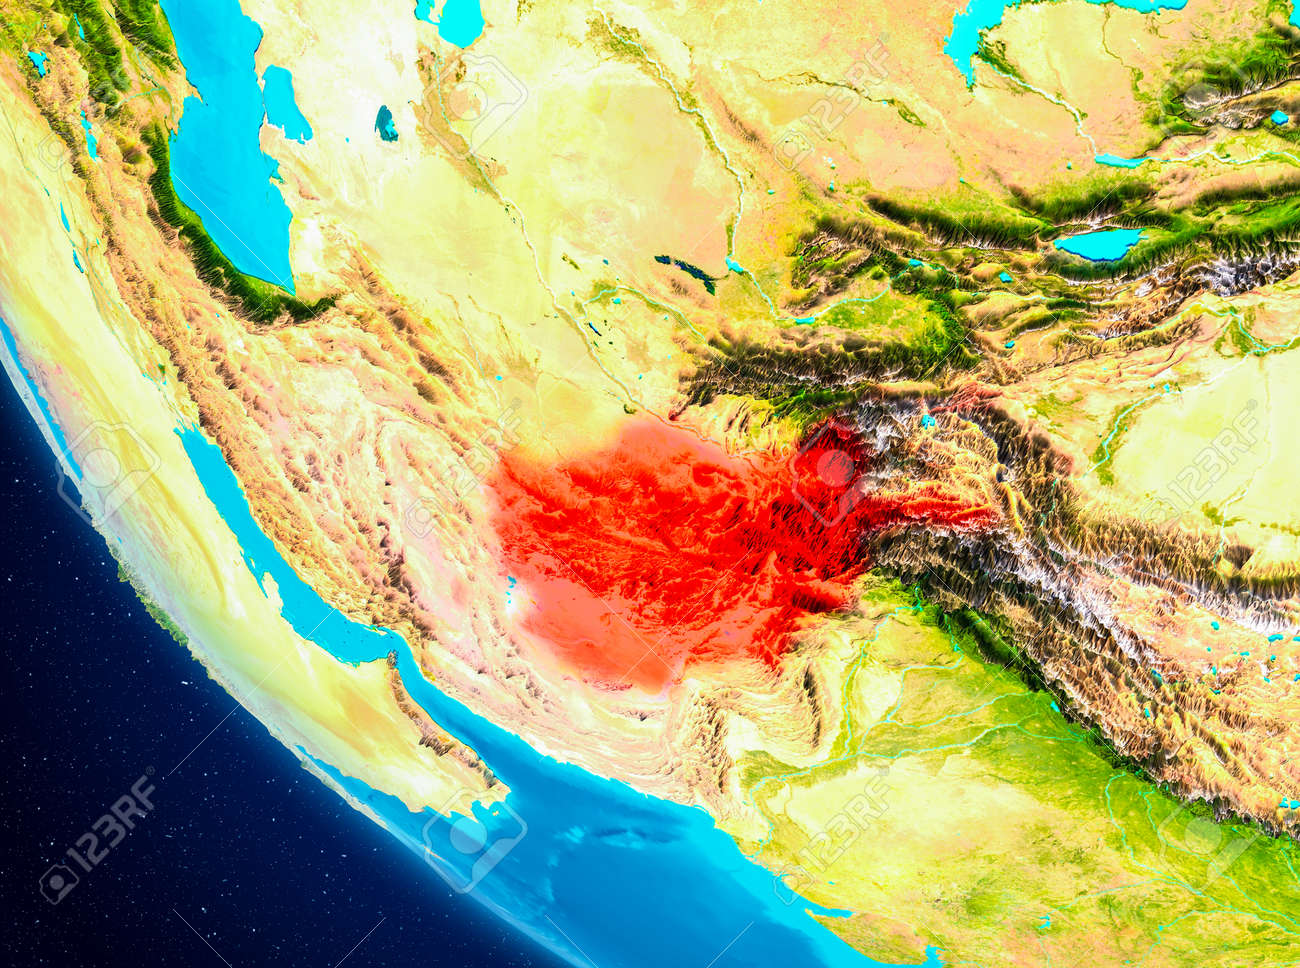 Afghanistan highlighted in red on planet earth 3d illustration afghanistan highlighted in red on planet earth 3d illustration stock illustration 93220910 gumiabroncs Image collections